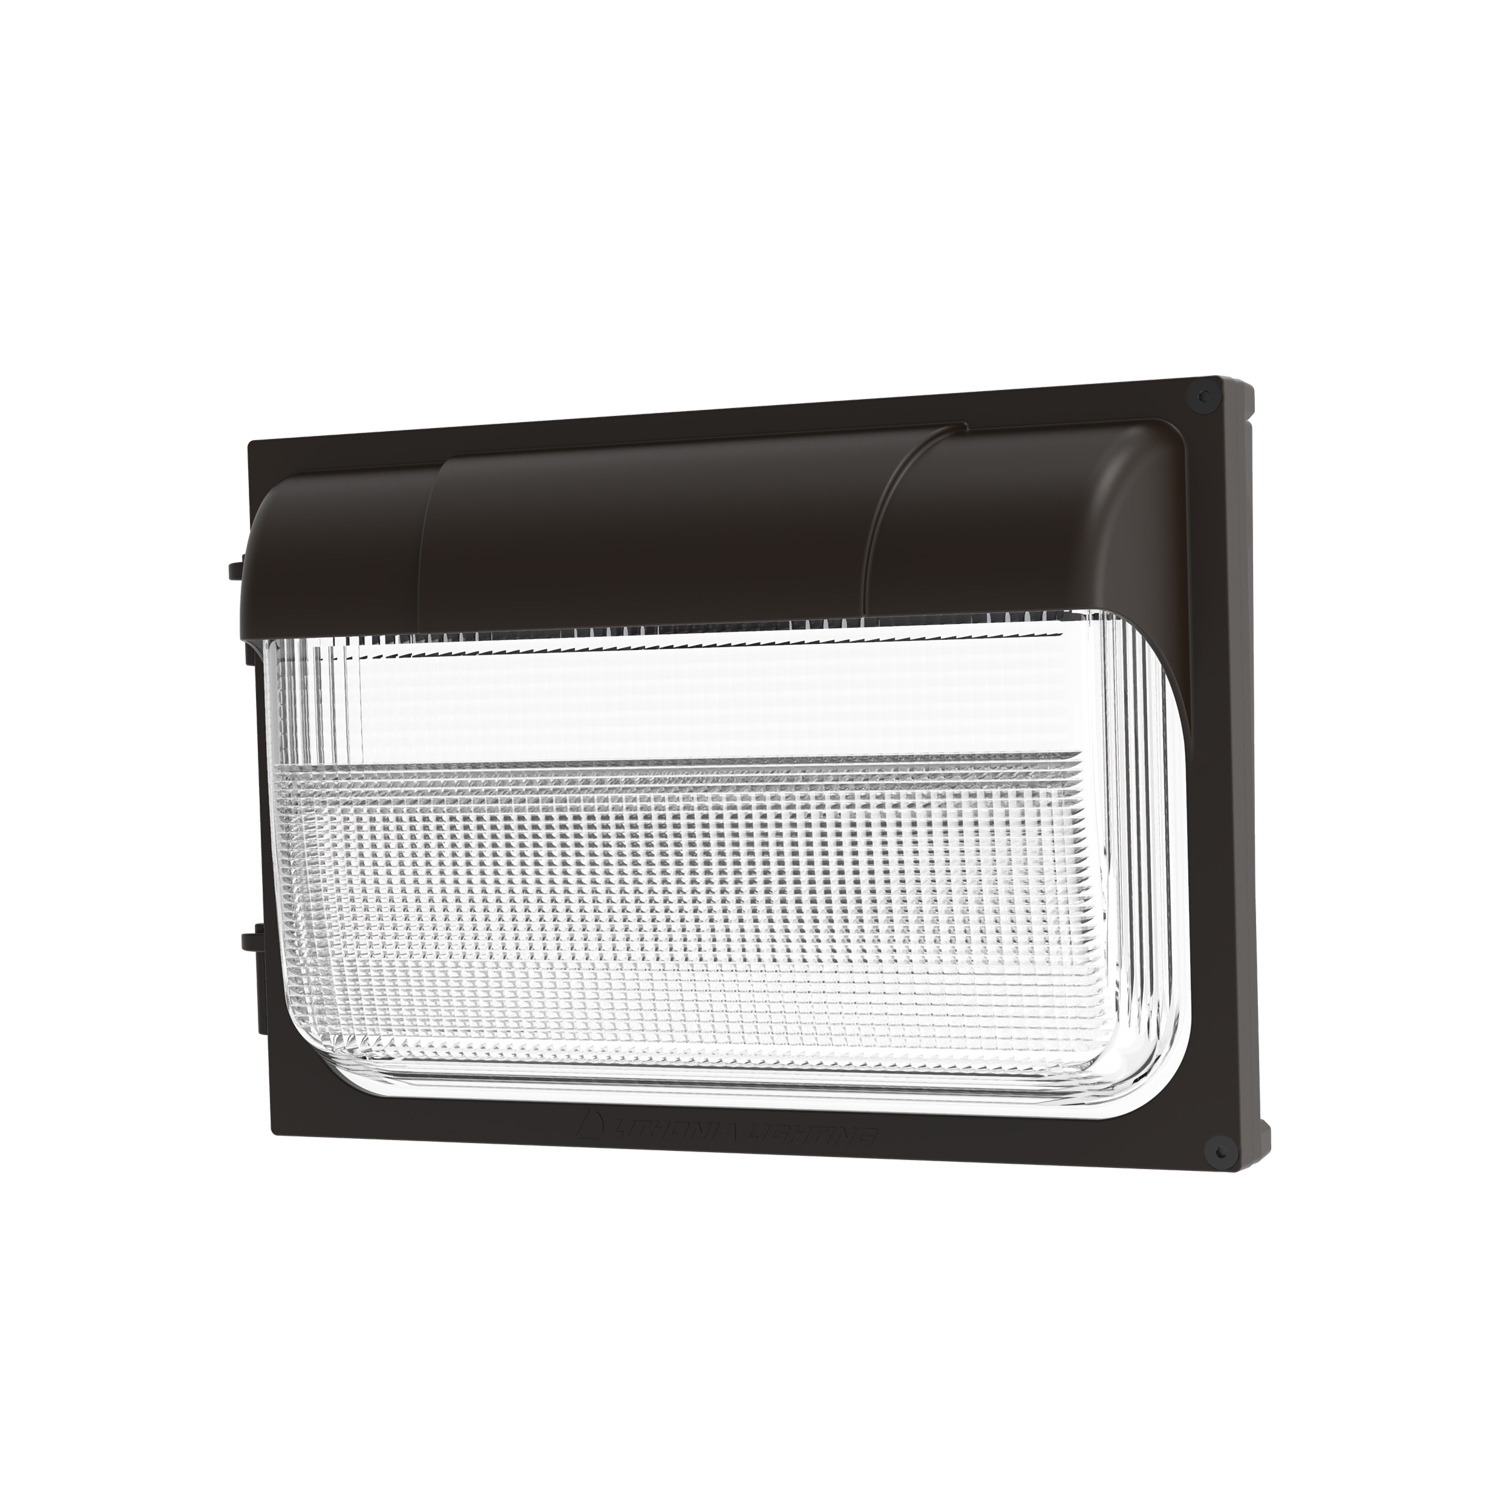 Contractor Select TWX LED Wall Packs